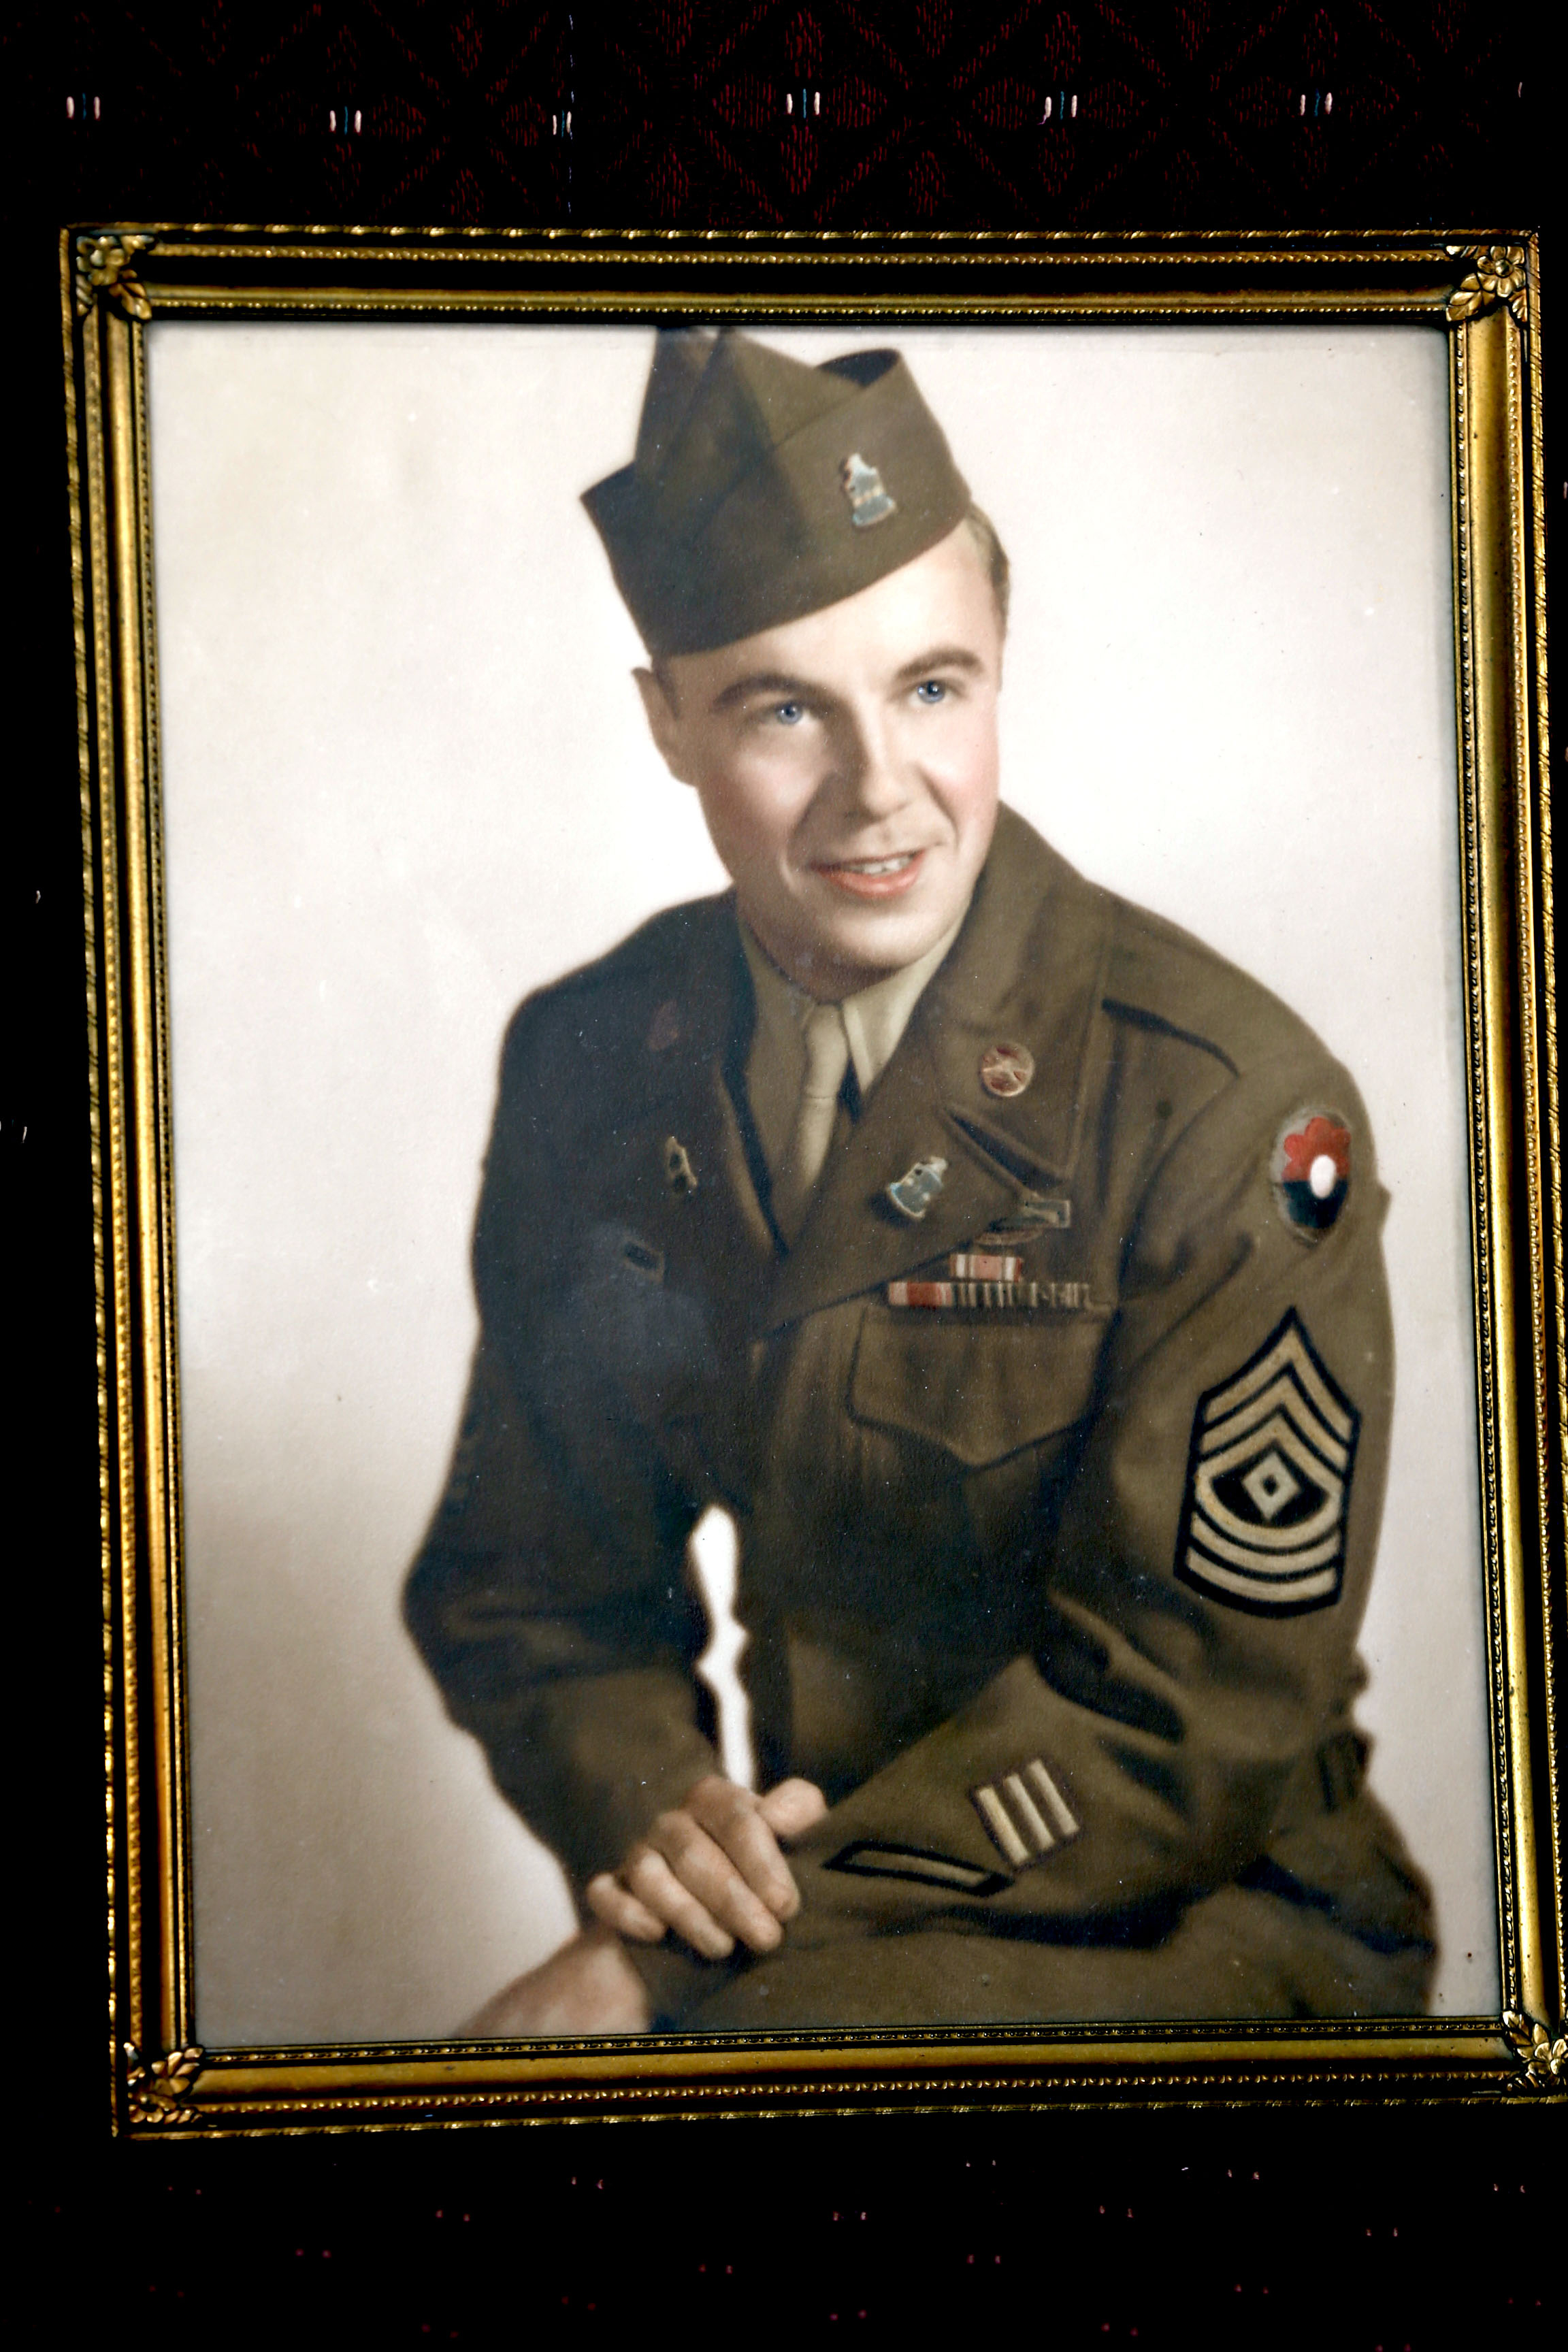 Clay Bihl in his uniform in the 1940s during WWII. (Robert Kirkham/Buffalo News)